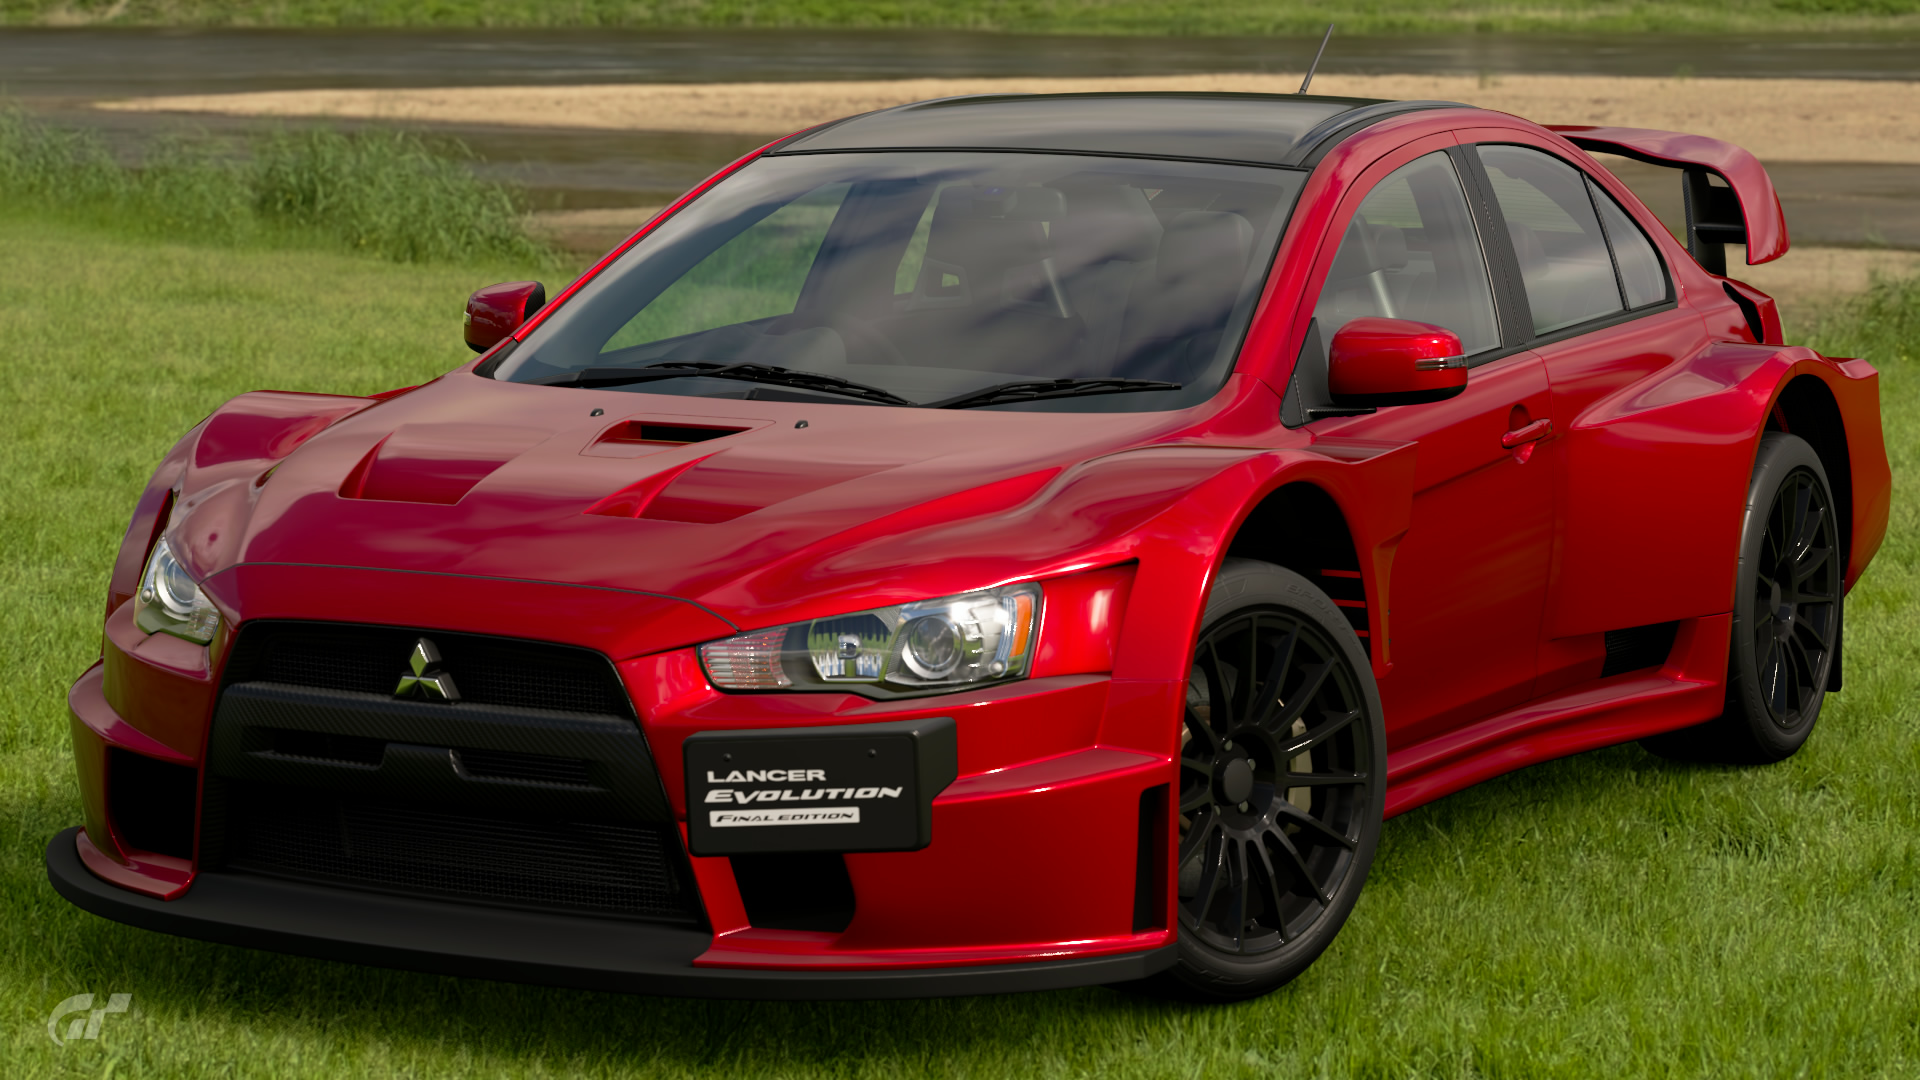 Mitsubishi Lancer Evolution Final Edition Gr.B Road Car | Gran ...